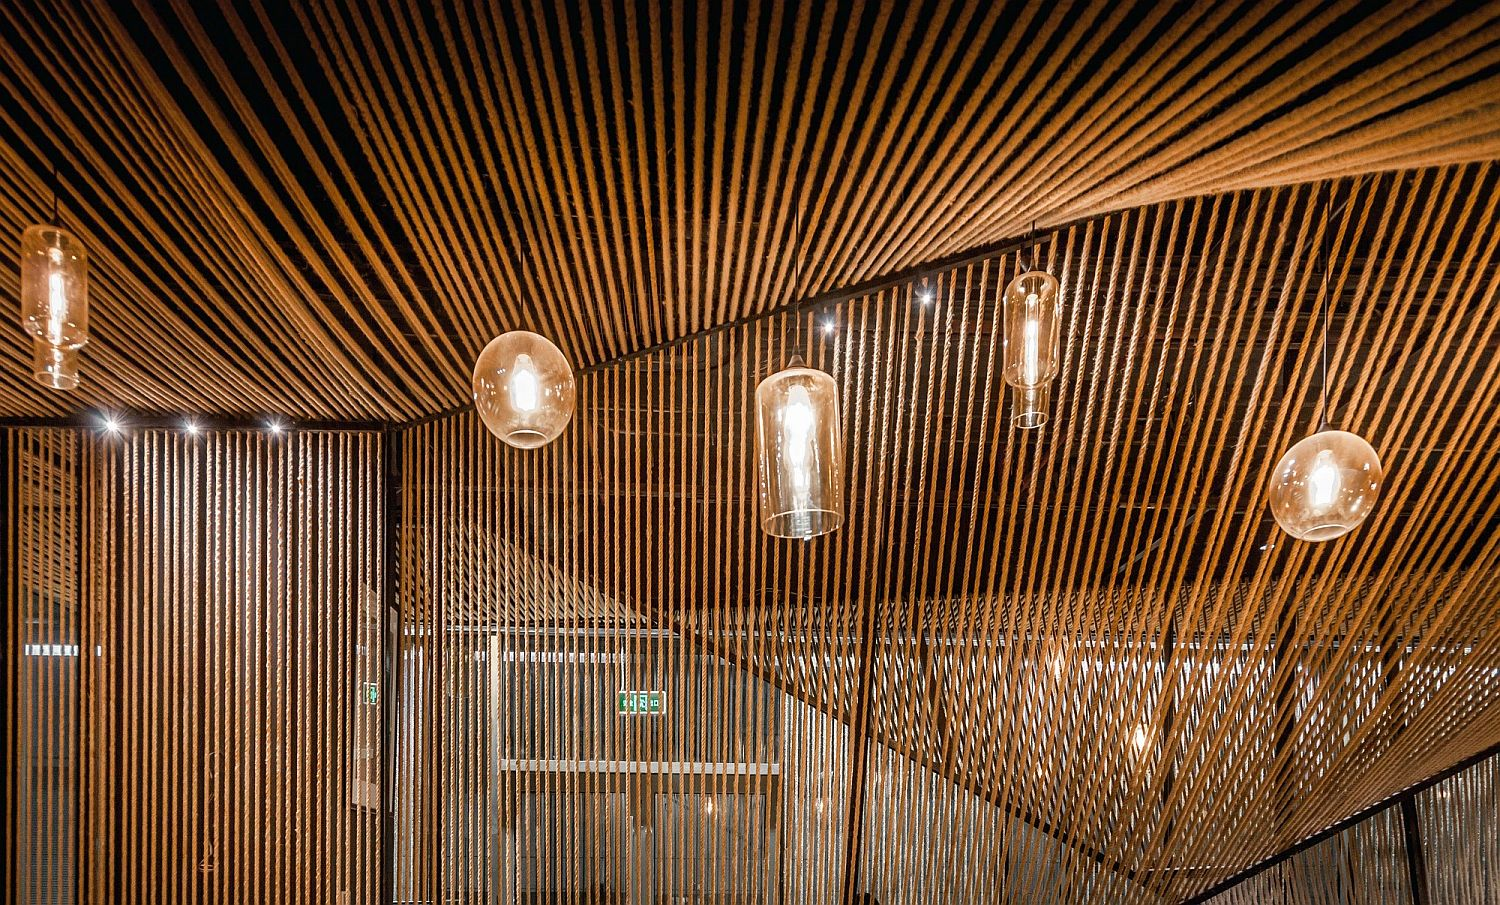 Lighting and rope combine to hide ceiling beams and other structural forms